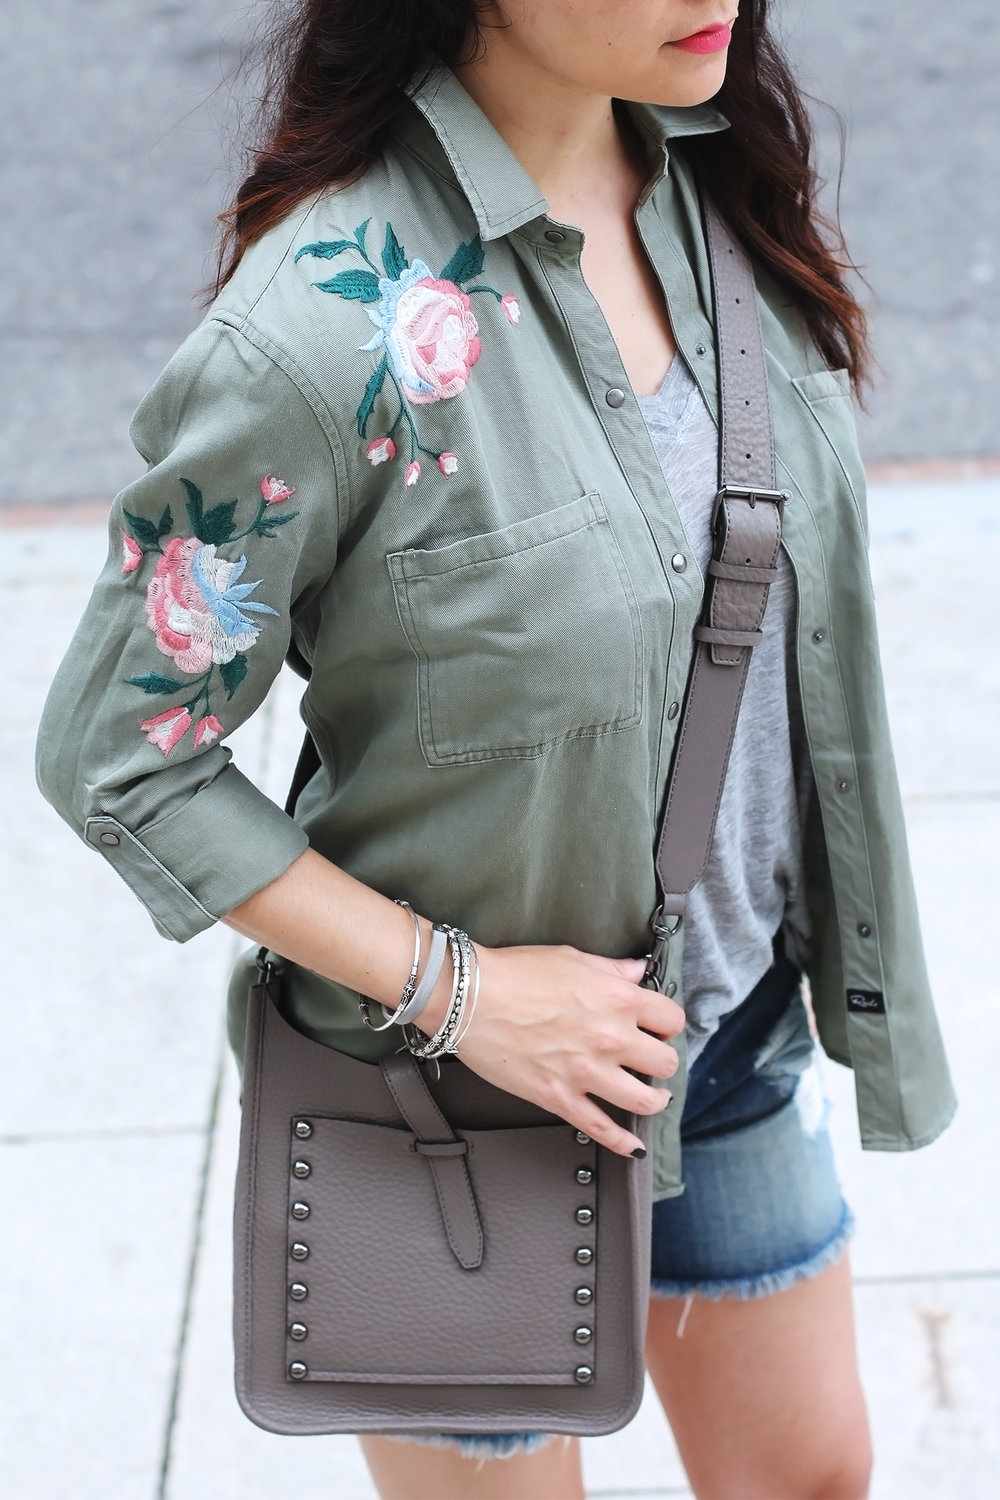 Rebecca Minkoff Bag, Style, Outfit